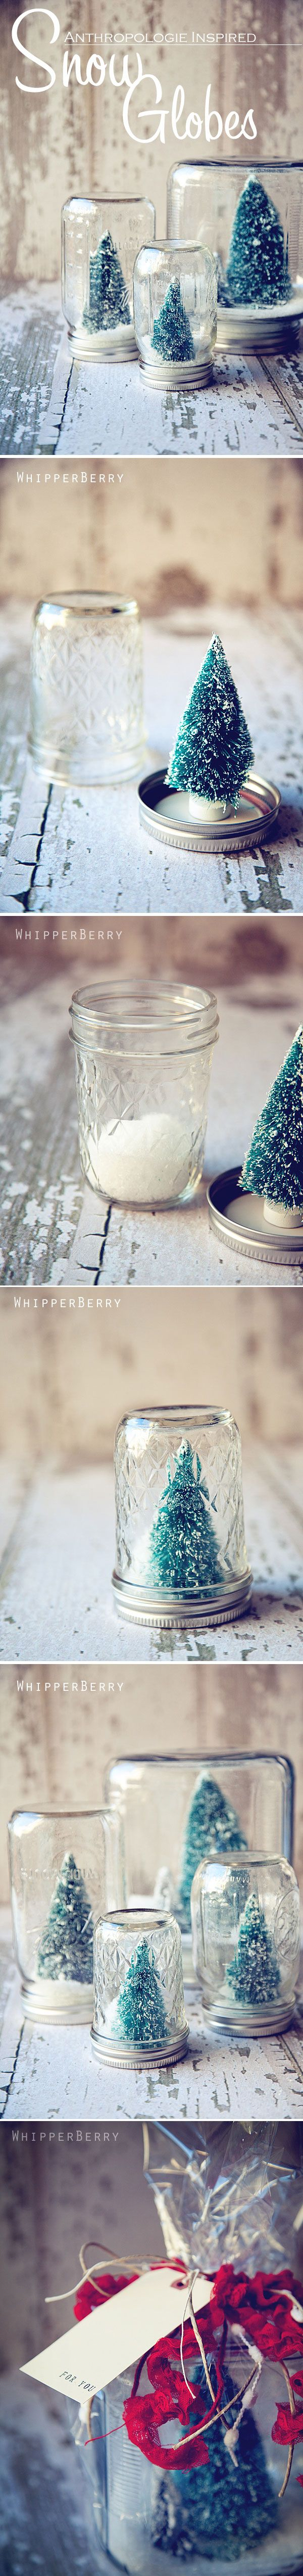 DIY Snow Globes craft crafts christmas diy crafts christmas crafts christmas diy diy christmas ideas christmas craft ideas easy christmas crafts easy christmas diy craft christmas decor diy christmas decorations